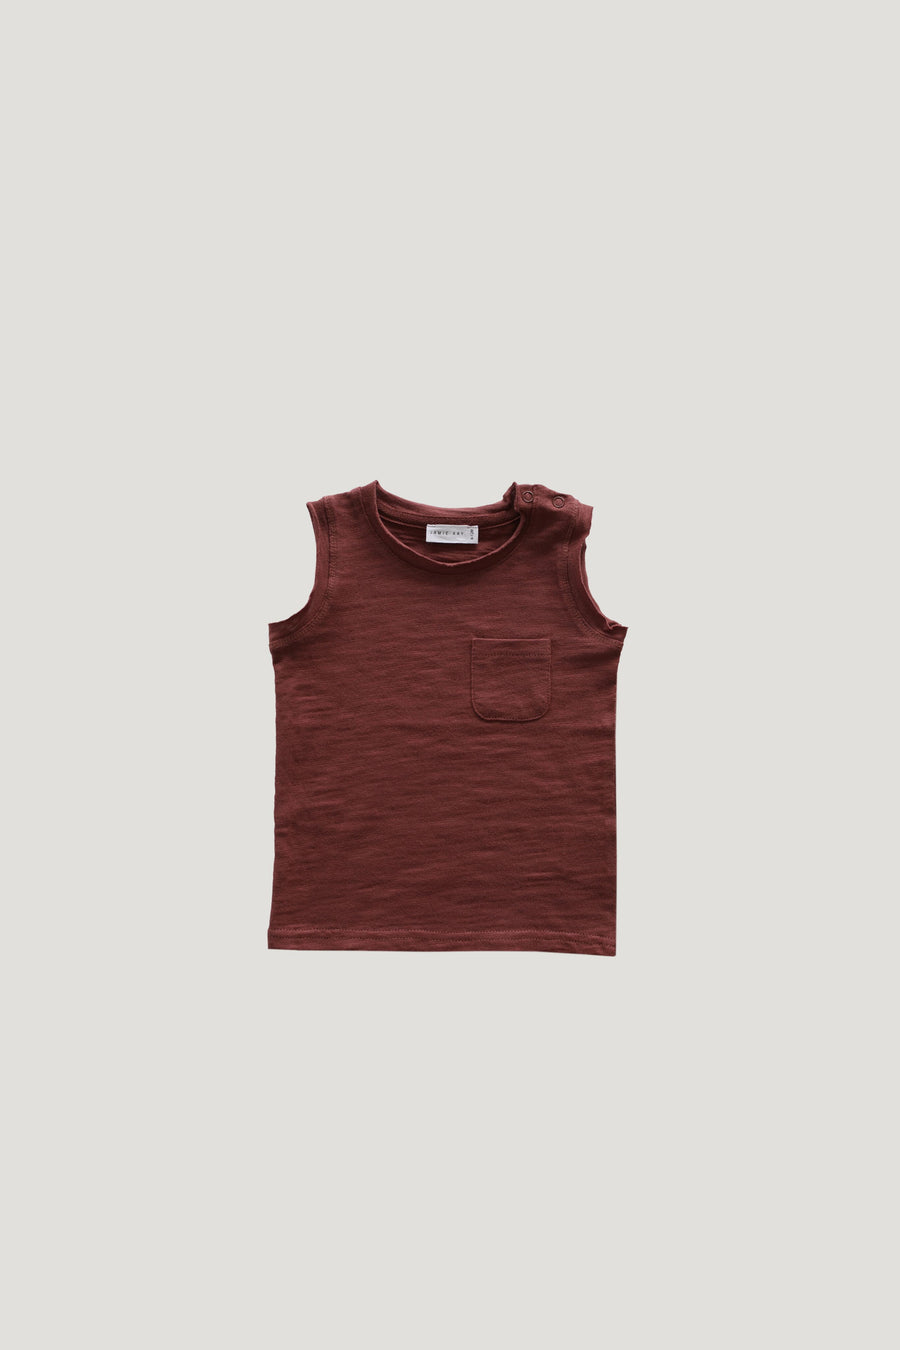 Jamie Kay - Slub Cotton River Tank - Clay